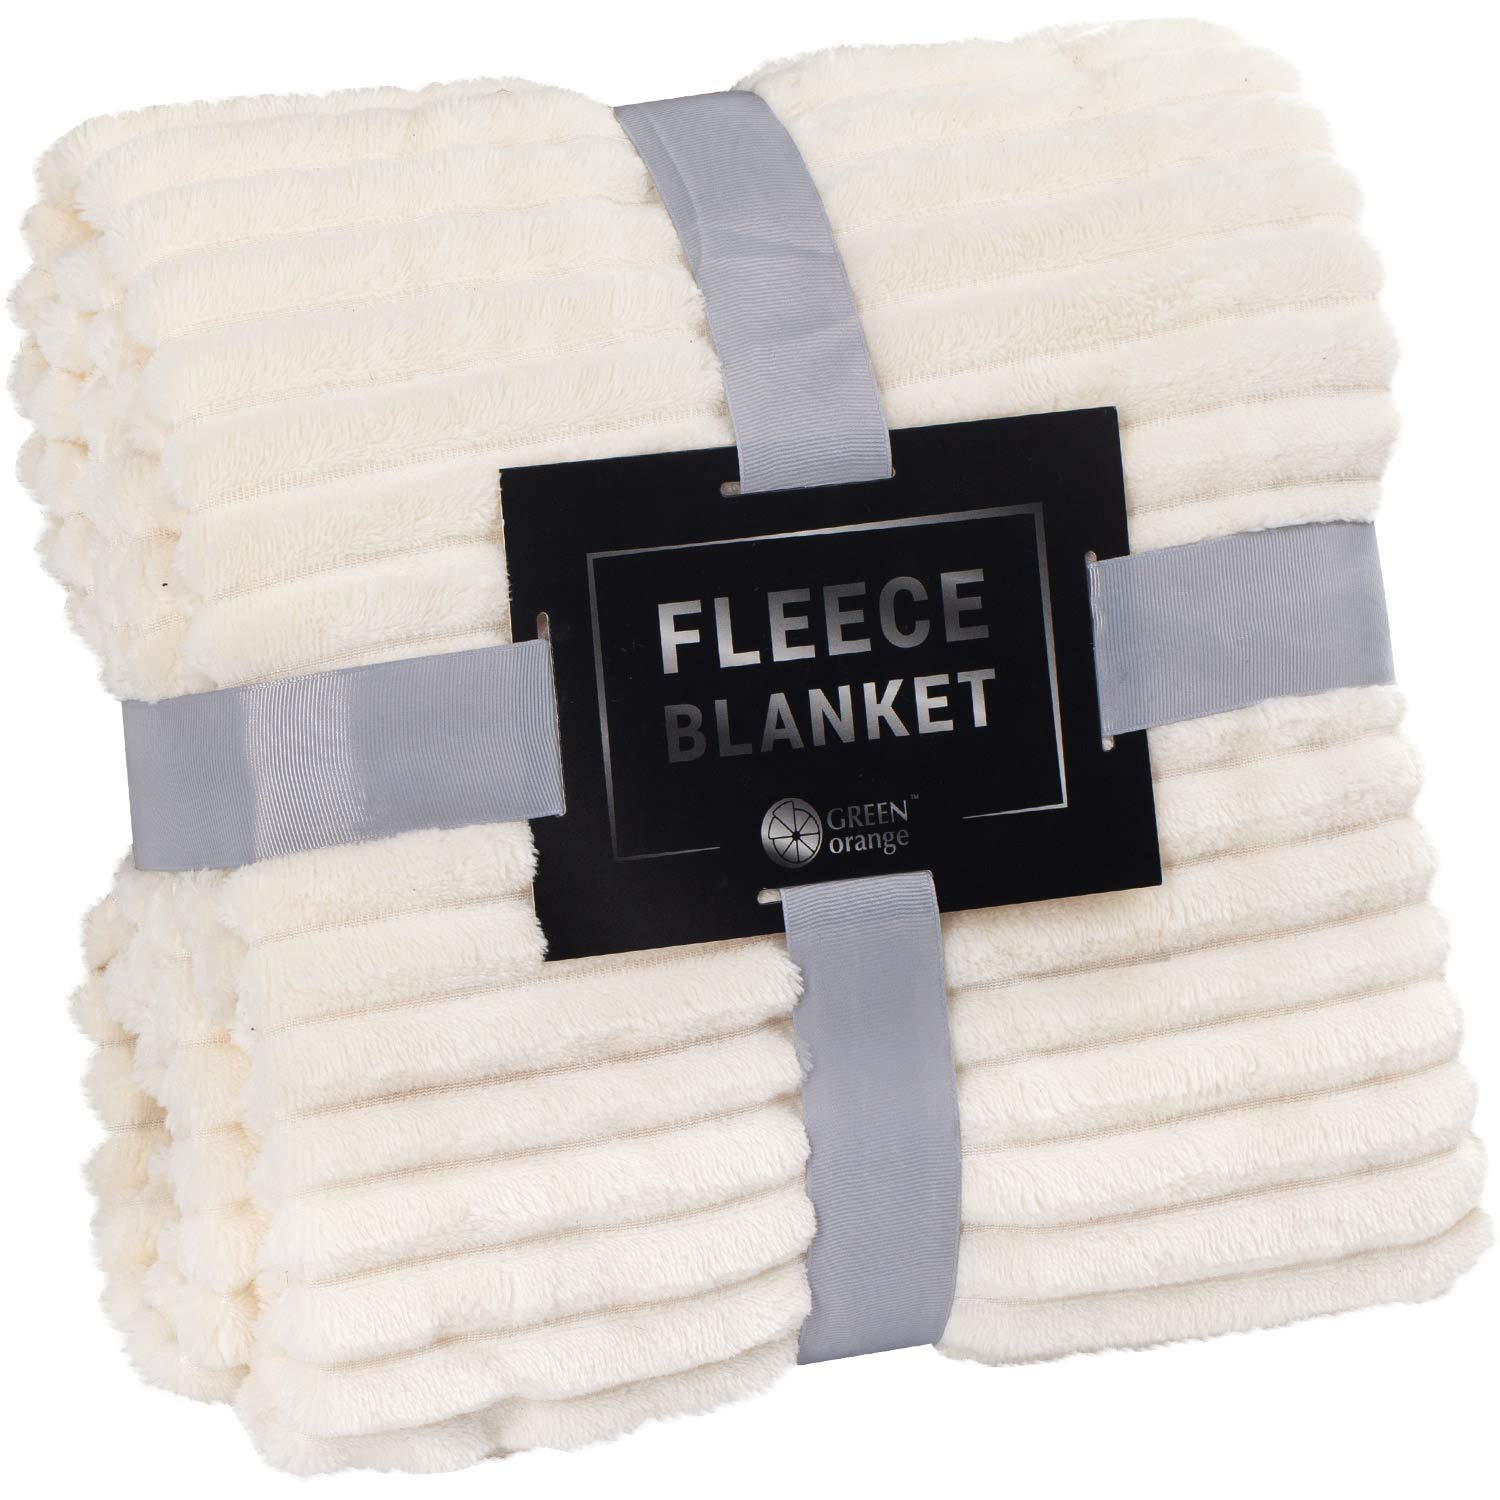 GREEN ORANGE Fleece Blanket Queen Size – 90x90, Milky White – Soft, Plush, Fluffy, Warm, Cozy – Perfect Full Size Throw for Couch, Bed, Sofa